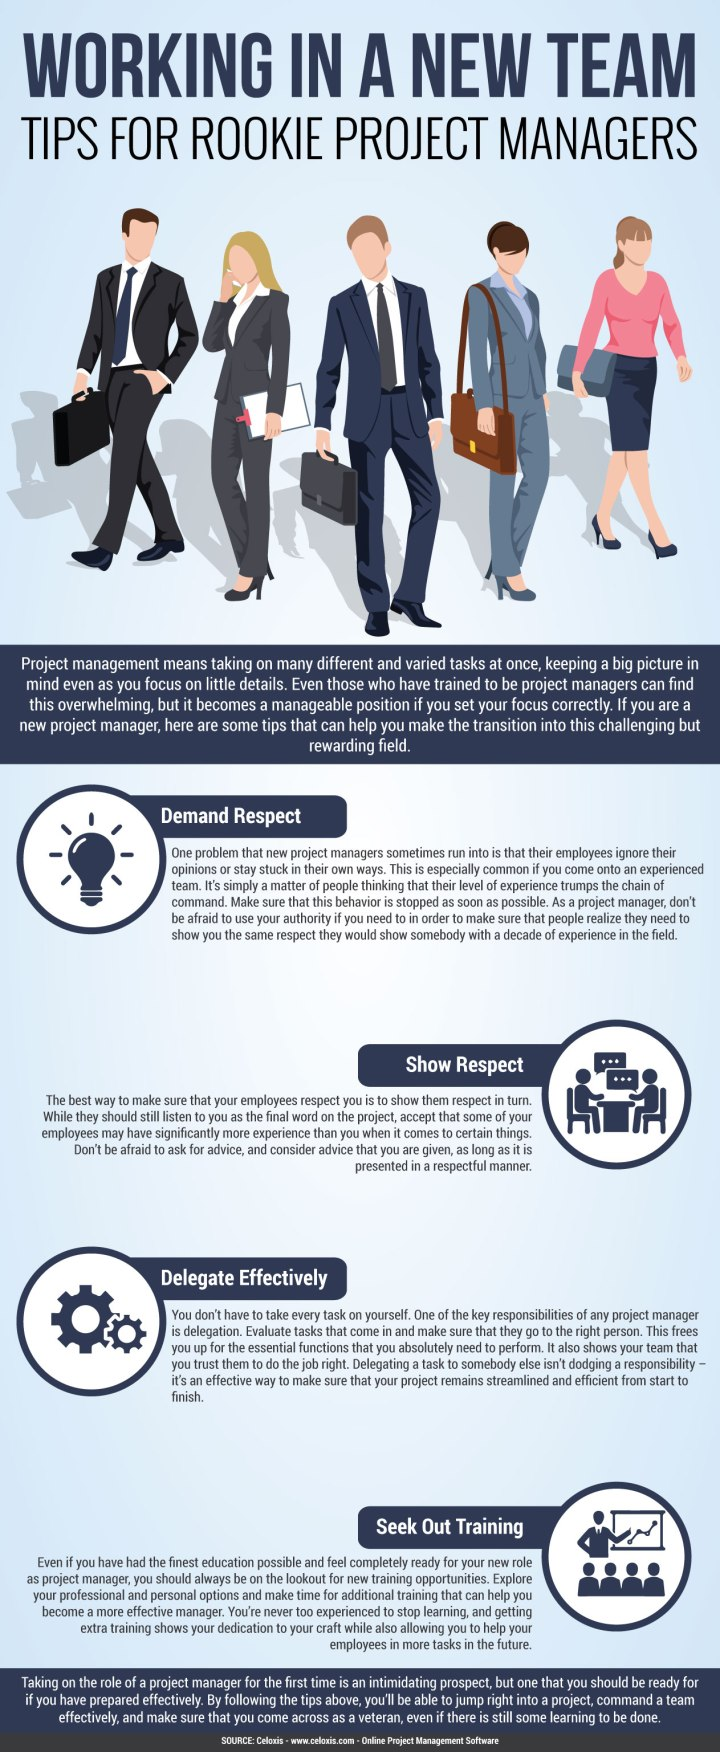 INFOGRAPHIC: Working in a New Team - Tips for Rookie Project Managers